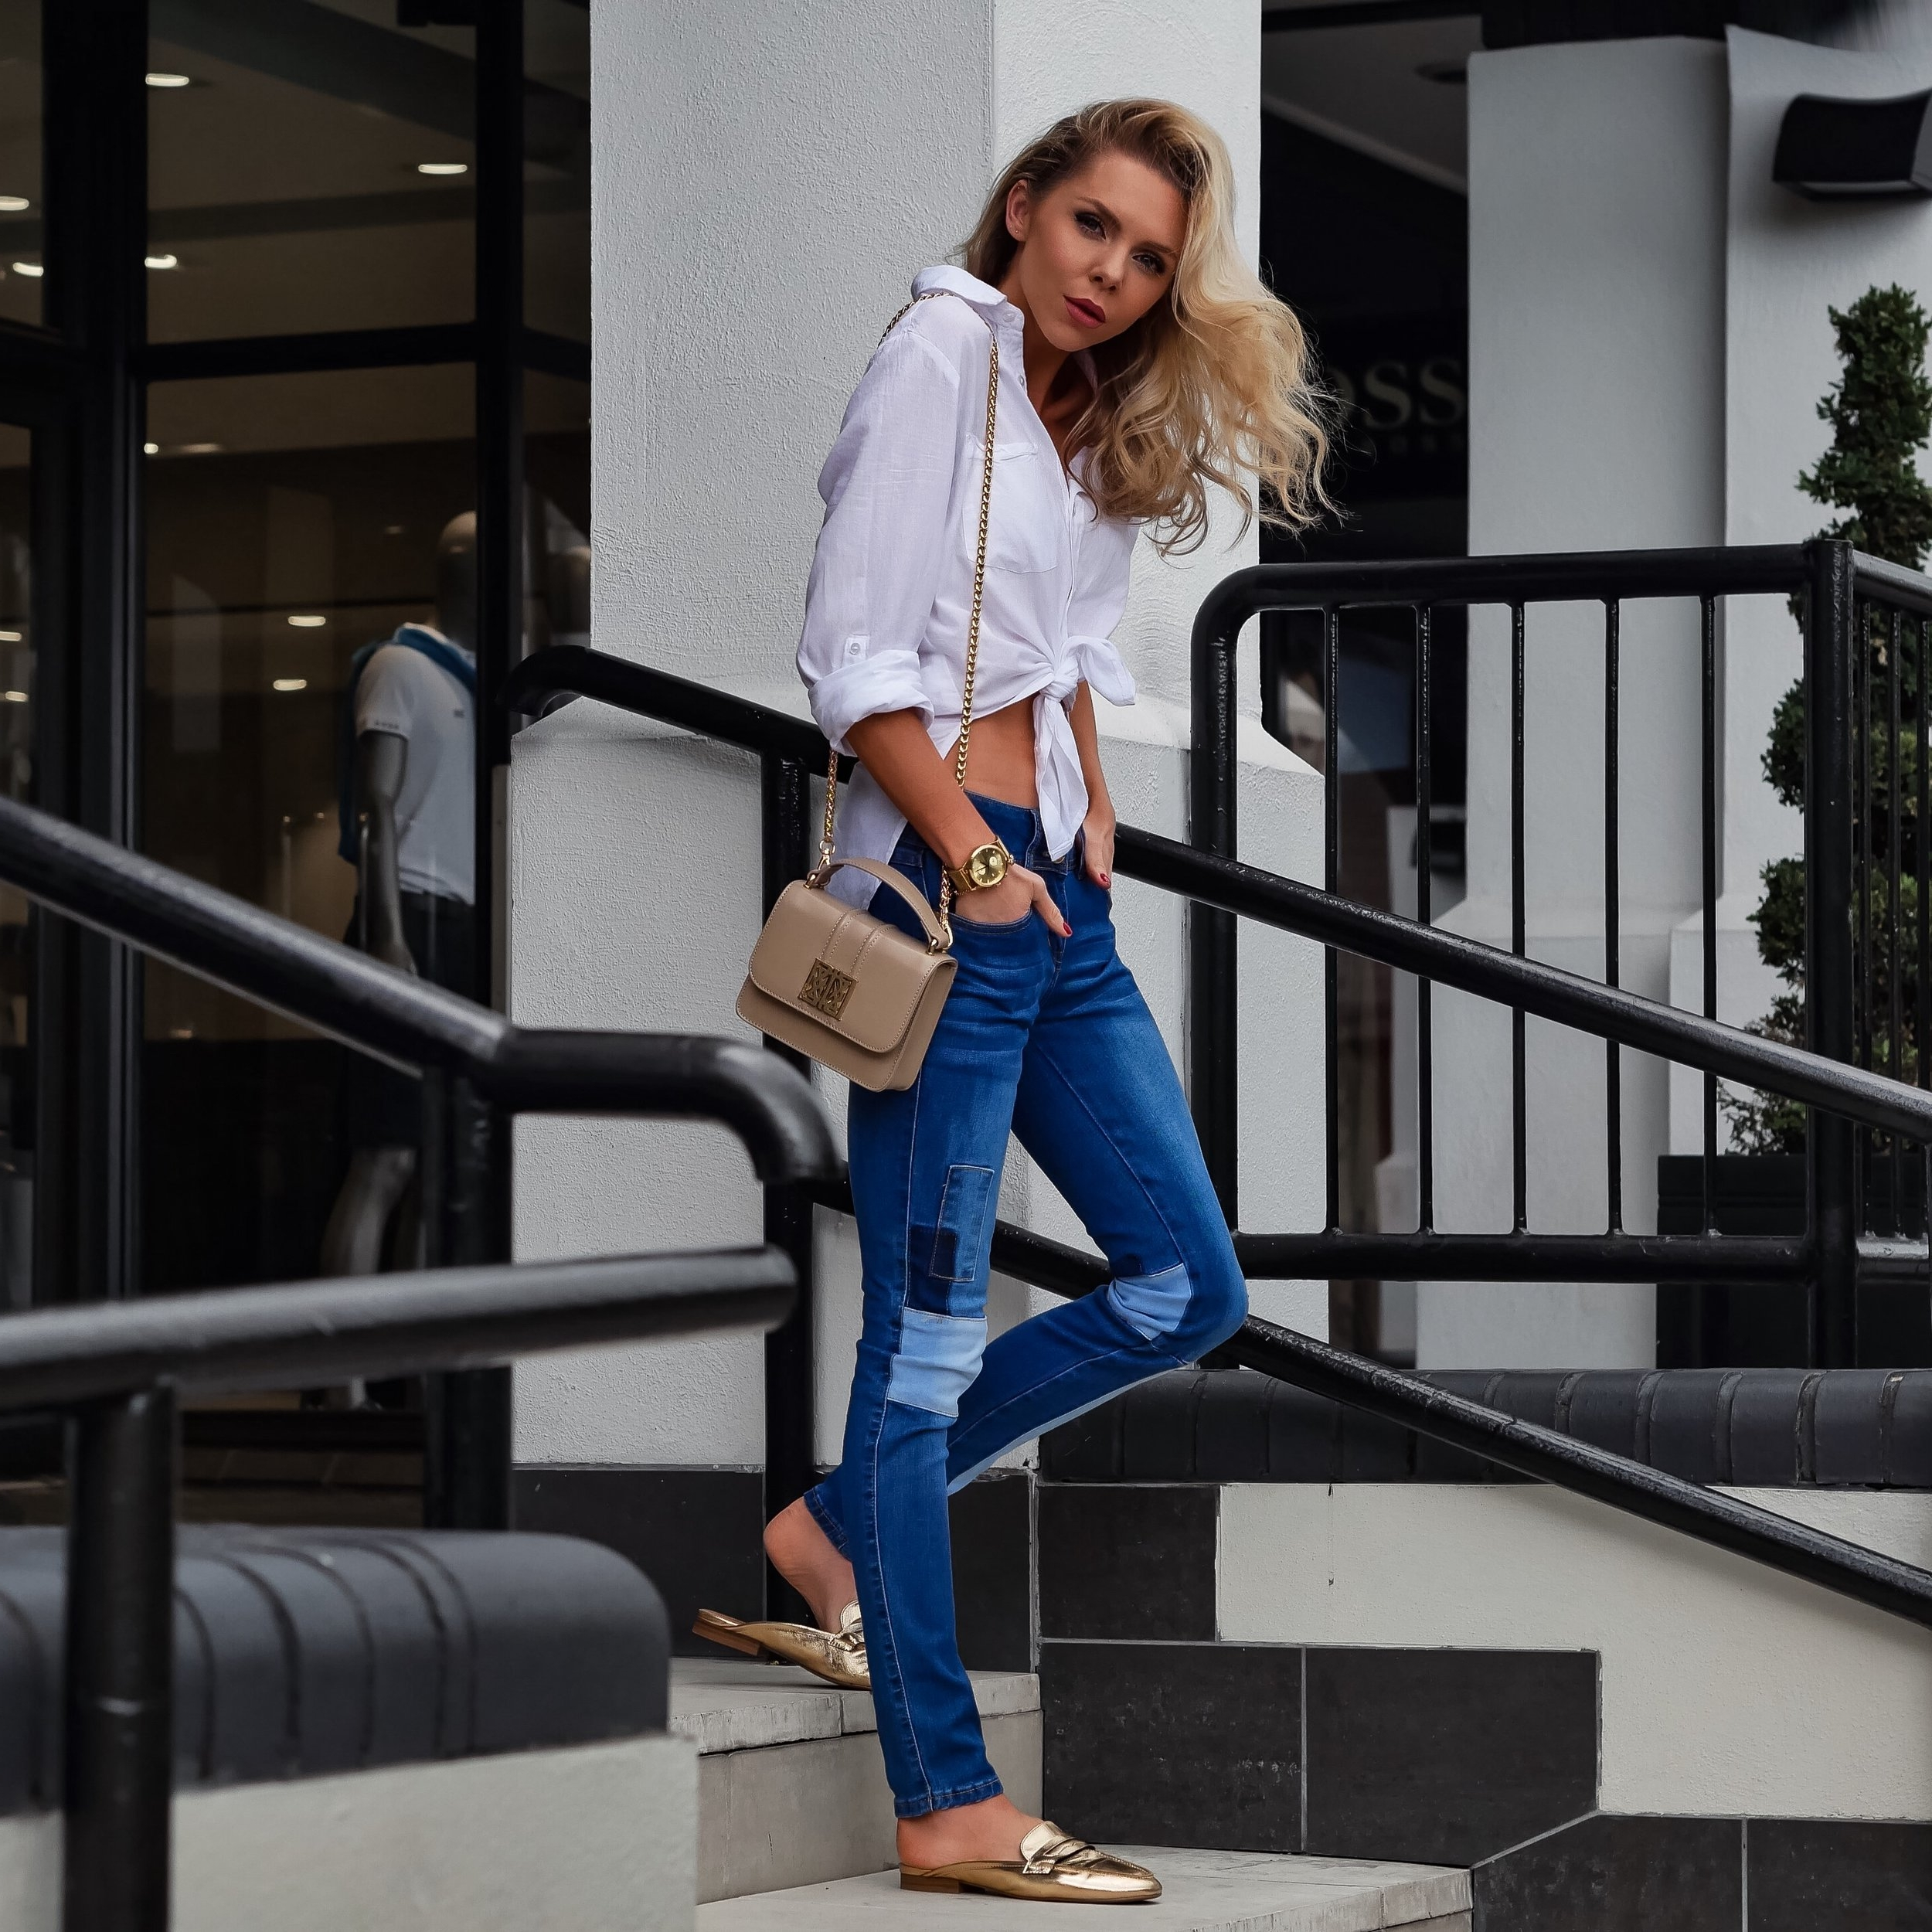 haul, affordable fashion, streetstyle, inspiration, what to wear, fashion, lookbook, style, fashion blogger, laura blair, youtuber, london fashion girl, JEANS, DENIM, DENIM LOOKBOOK, PERFECT FIT JEANS, HOW TO STYLE JEANS, DENIM, FACTORY FASHION